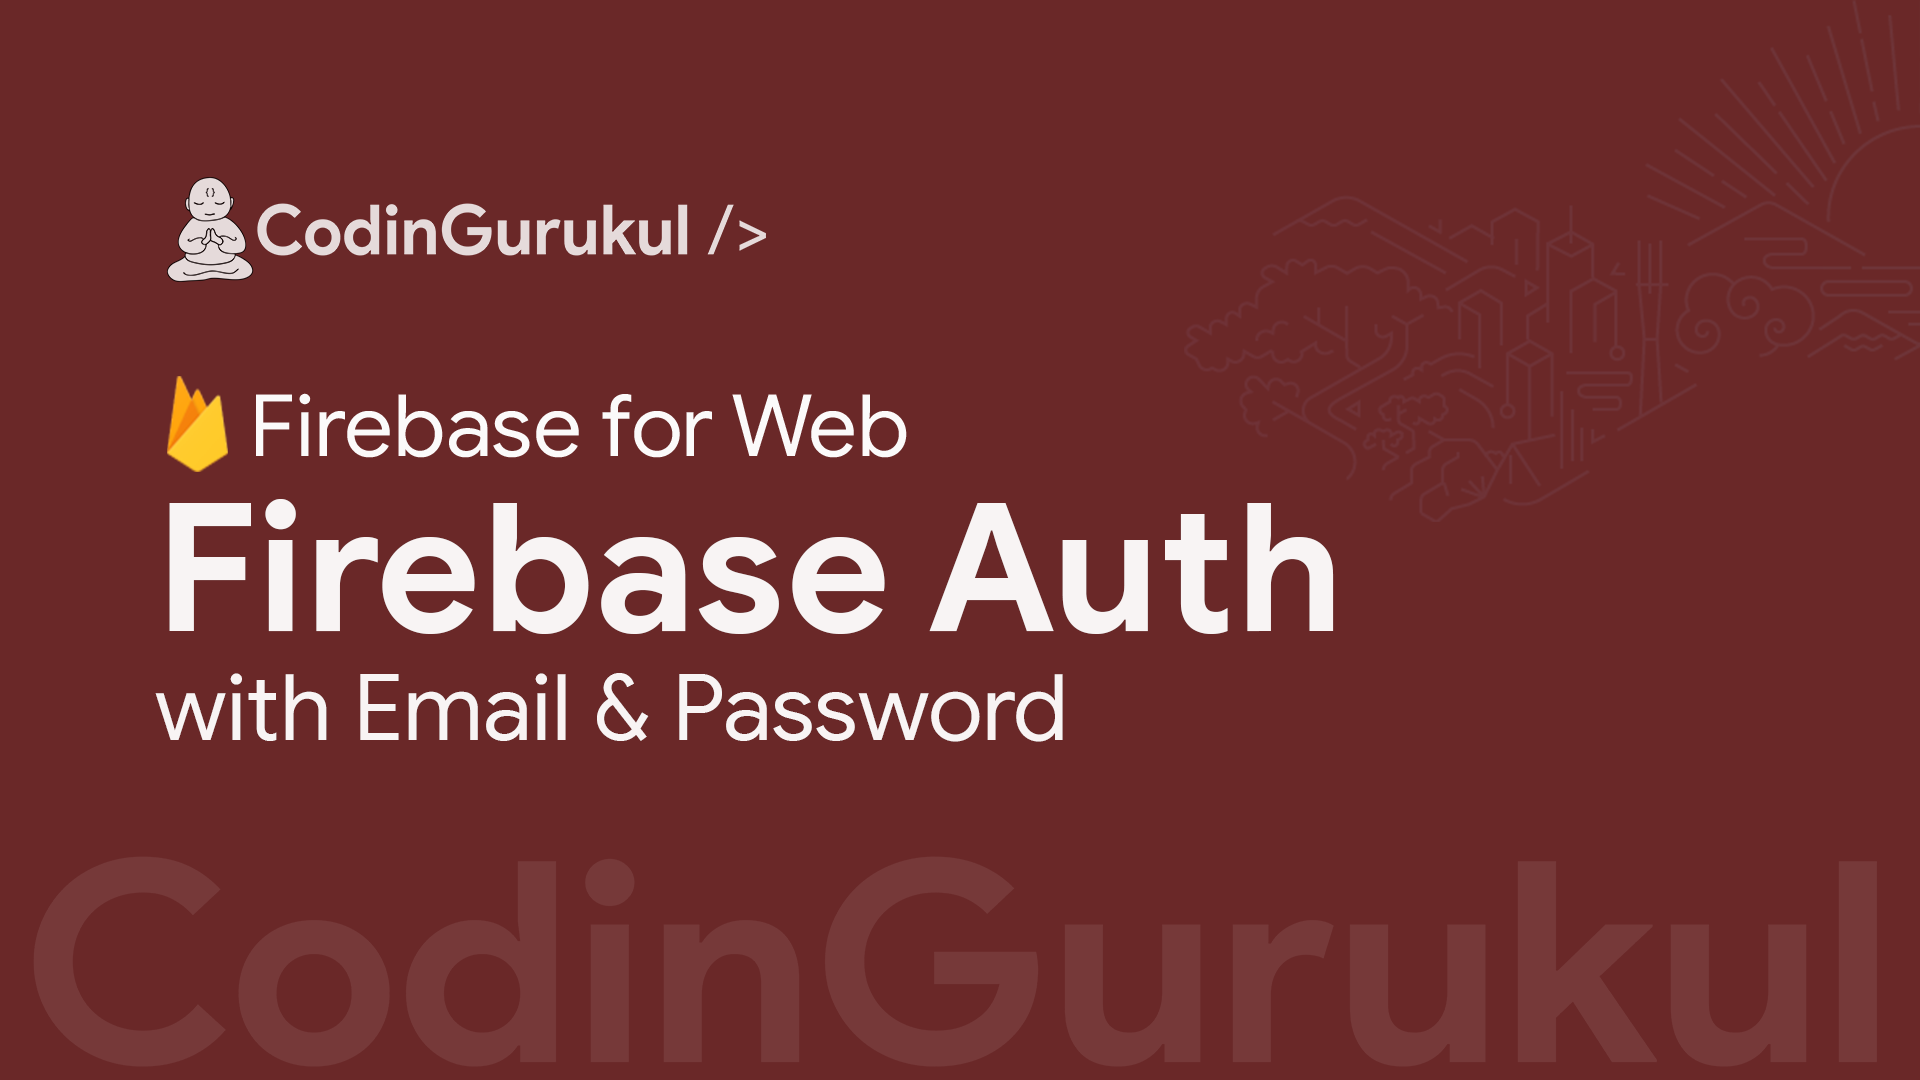 Firebase For Web: Authentication - Auth with Email and Password